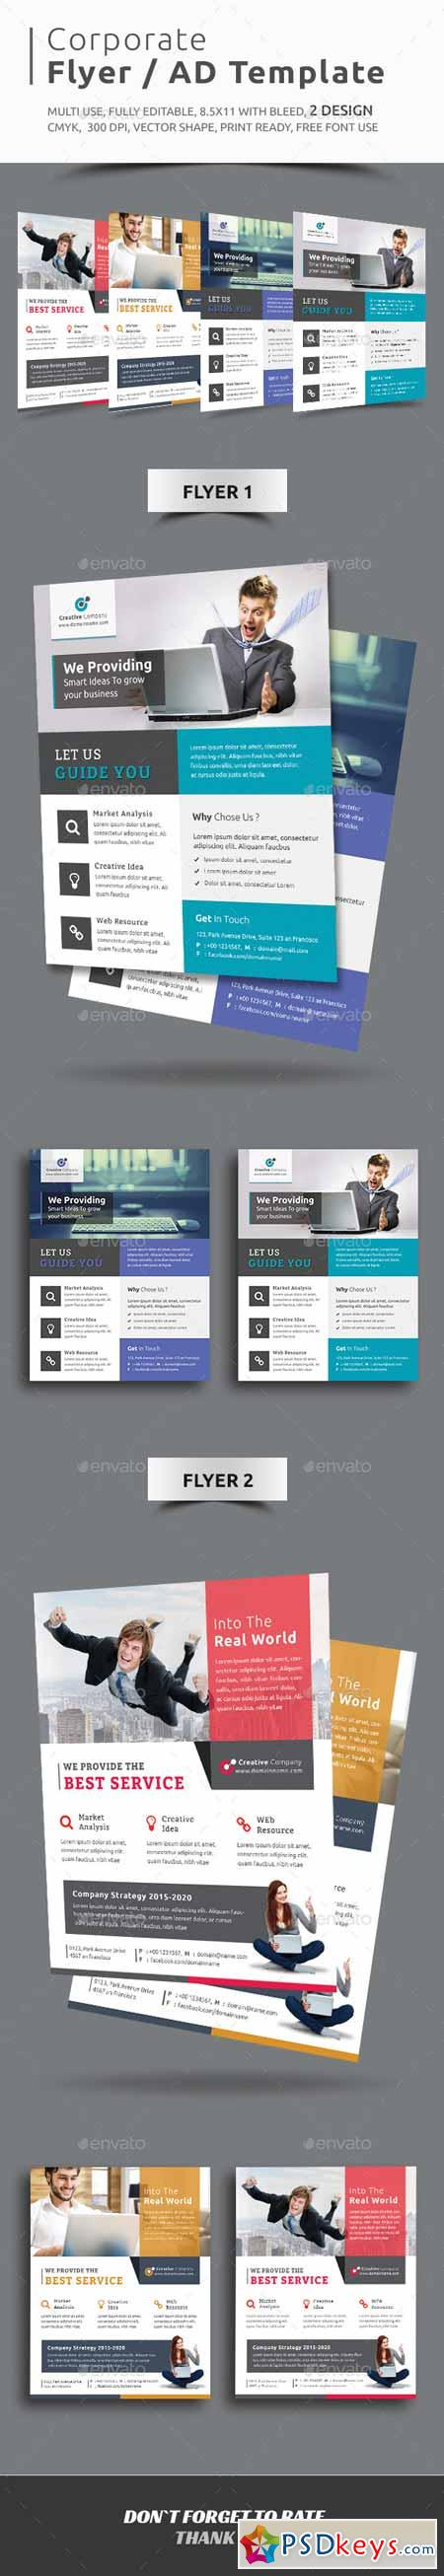 corporate flyer ad template 11769827 photoshop corporate flyer ad template 11769827